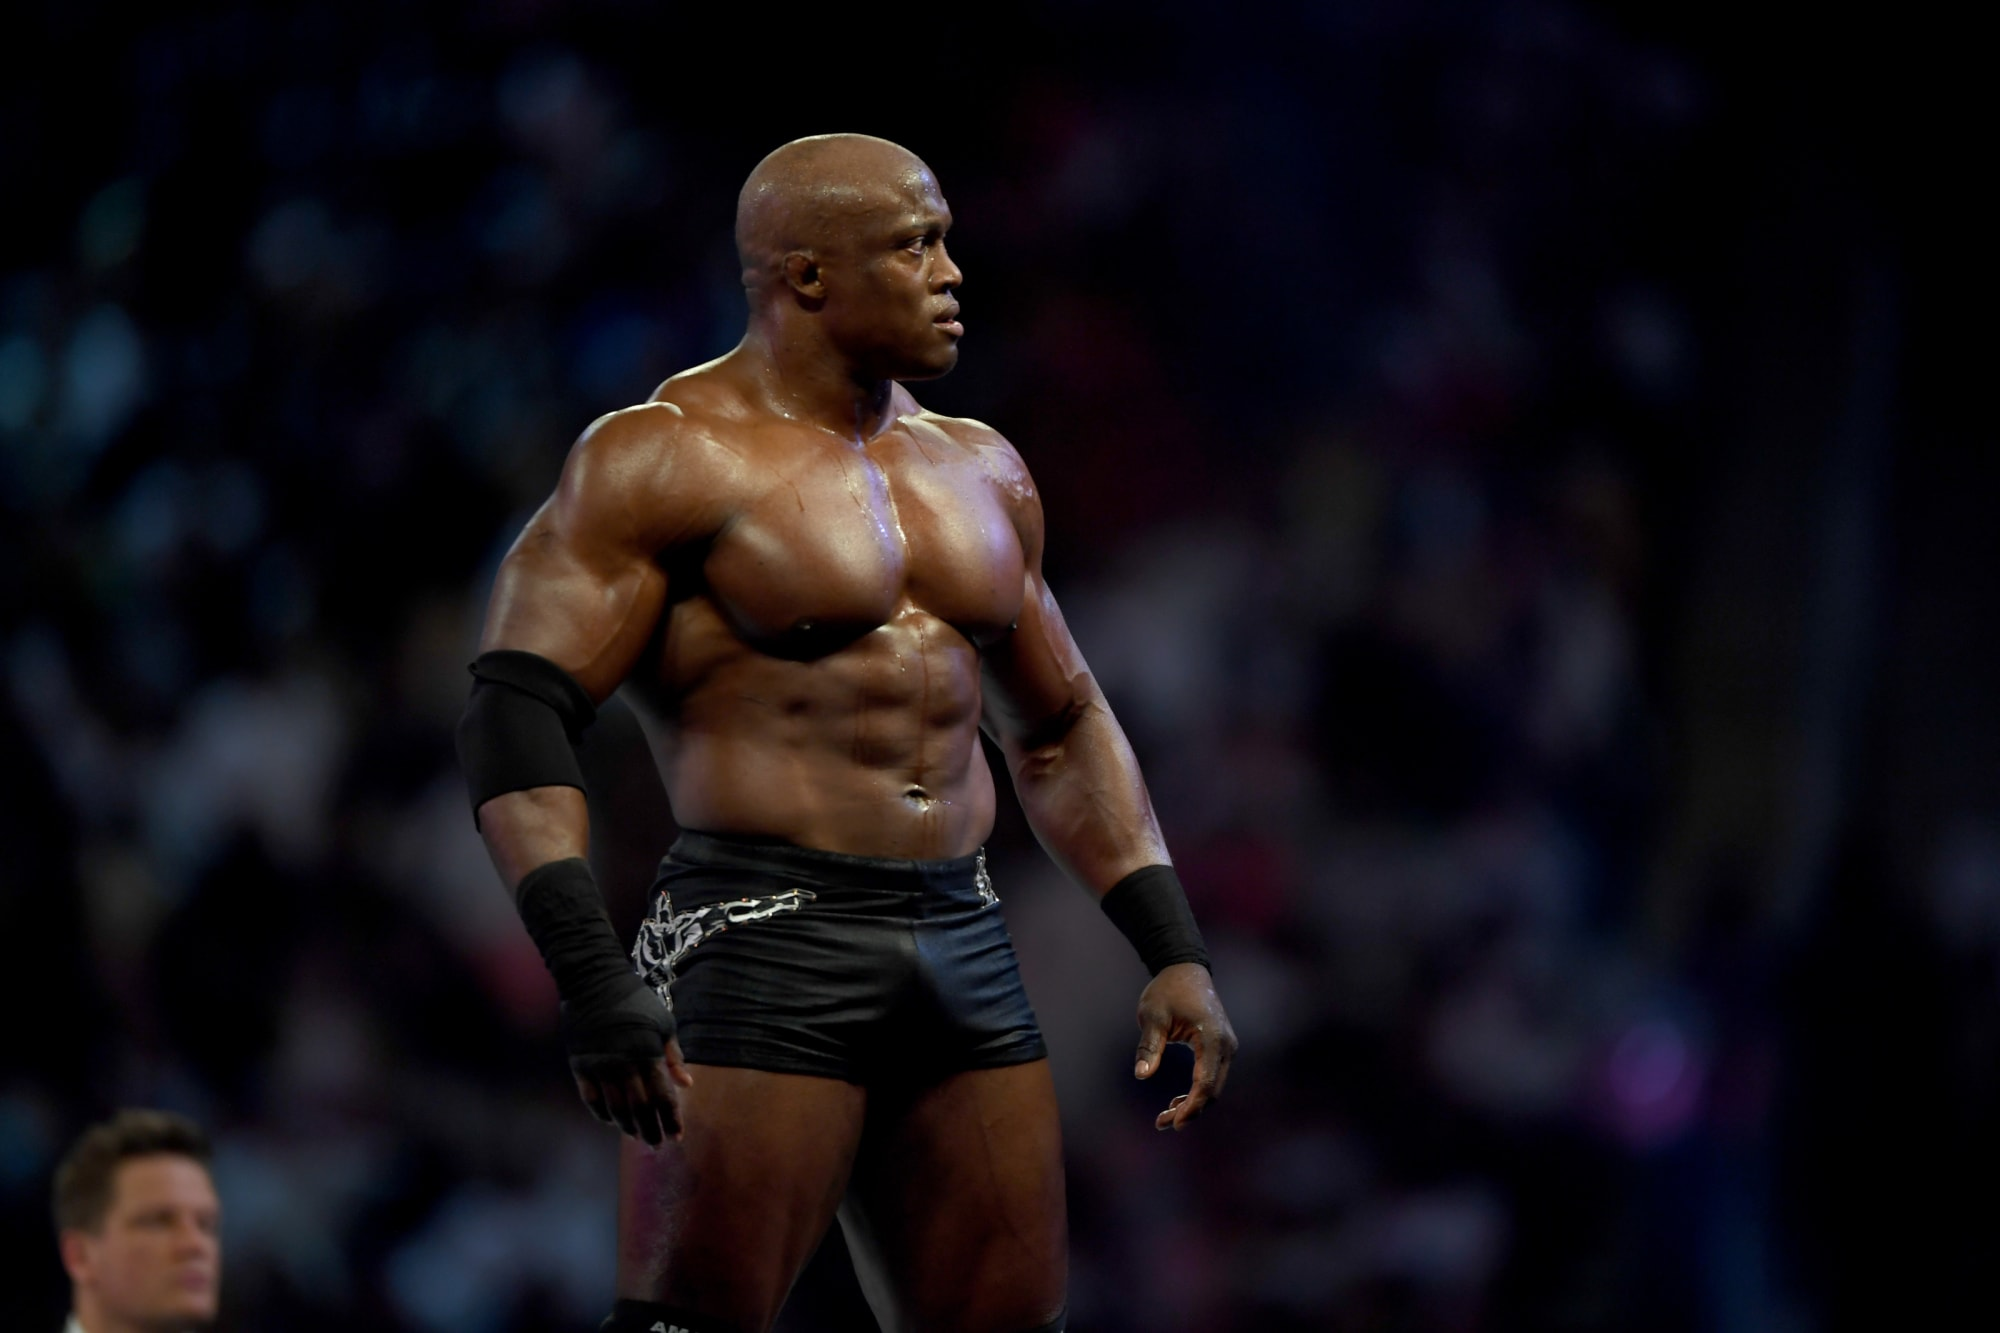 WWE Raw: Bobby Lashley defeats Xavier Woods in Hell in a Cell match